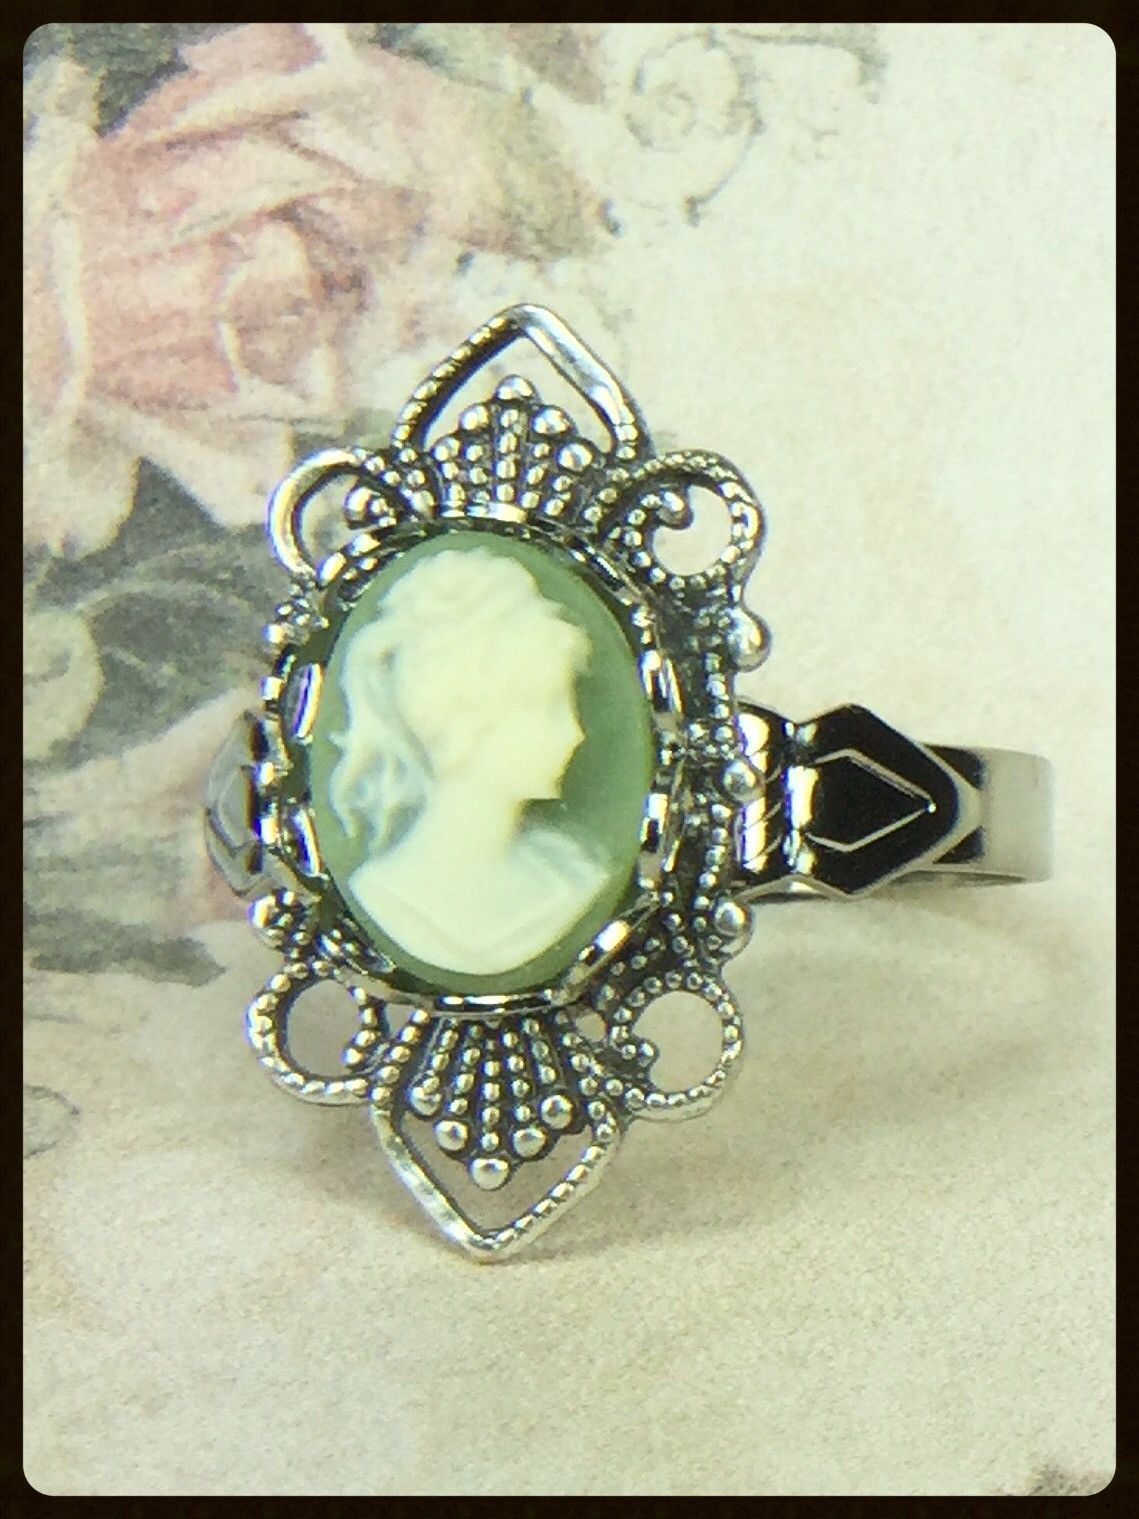 Ornate Filigee Cameo Ring